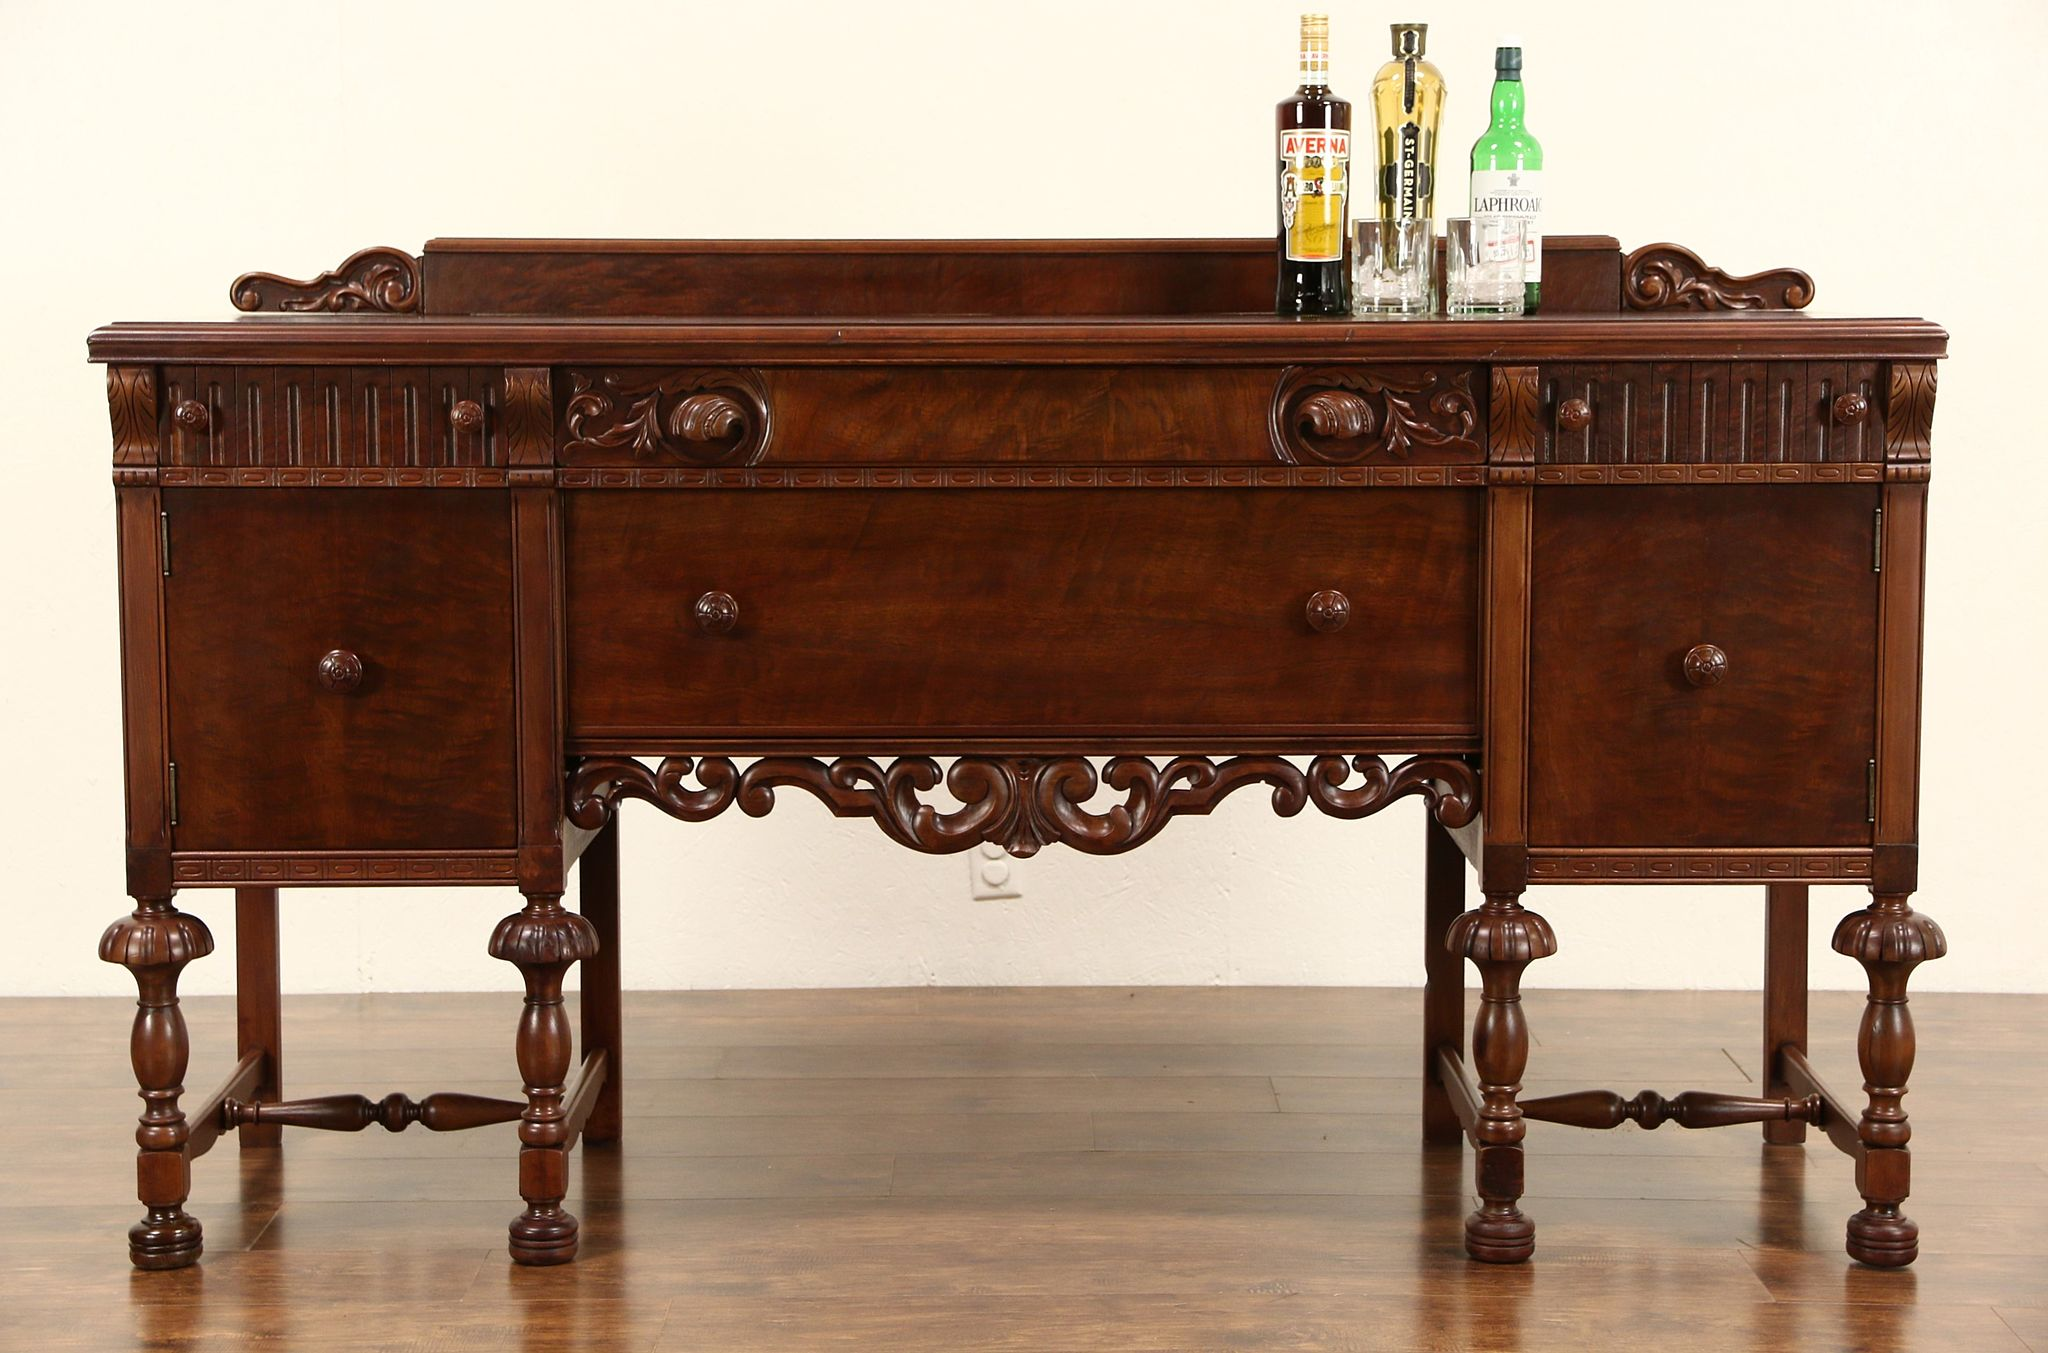 Sold english tudor style 1925 antique sideboard or for Tudor furnishings